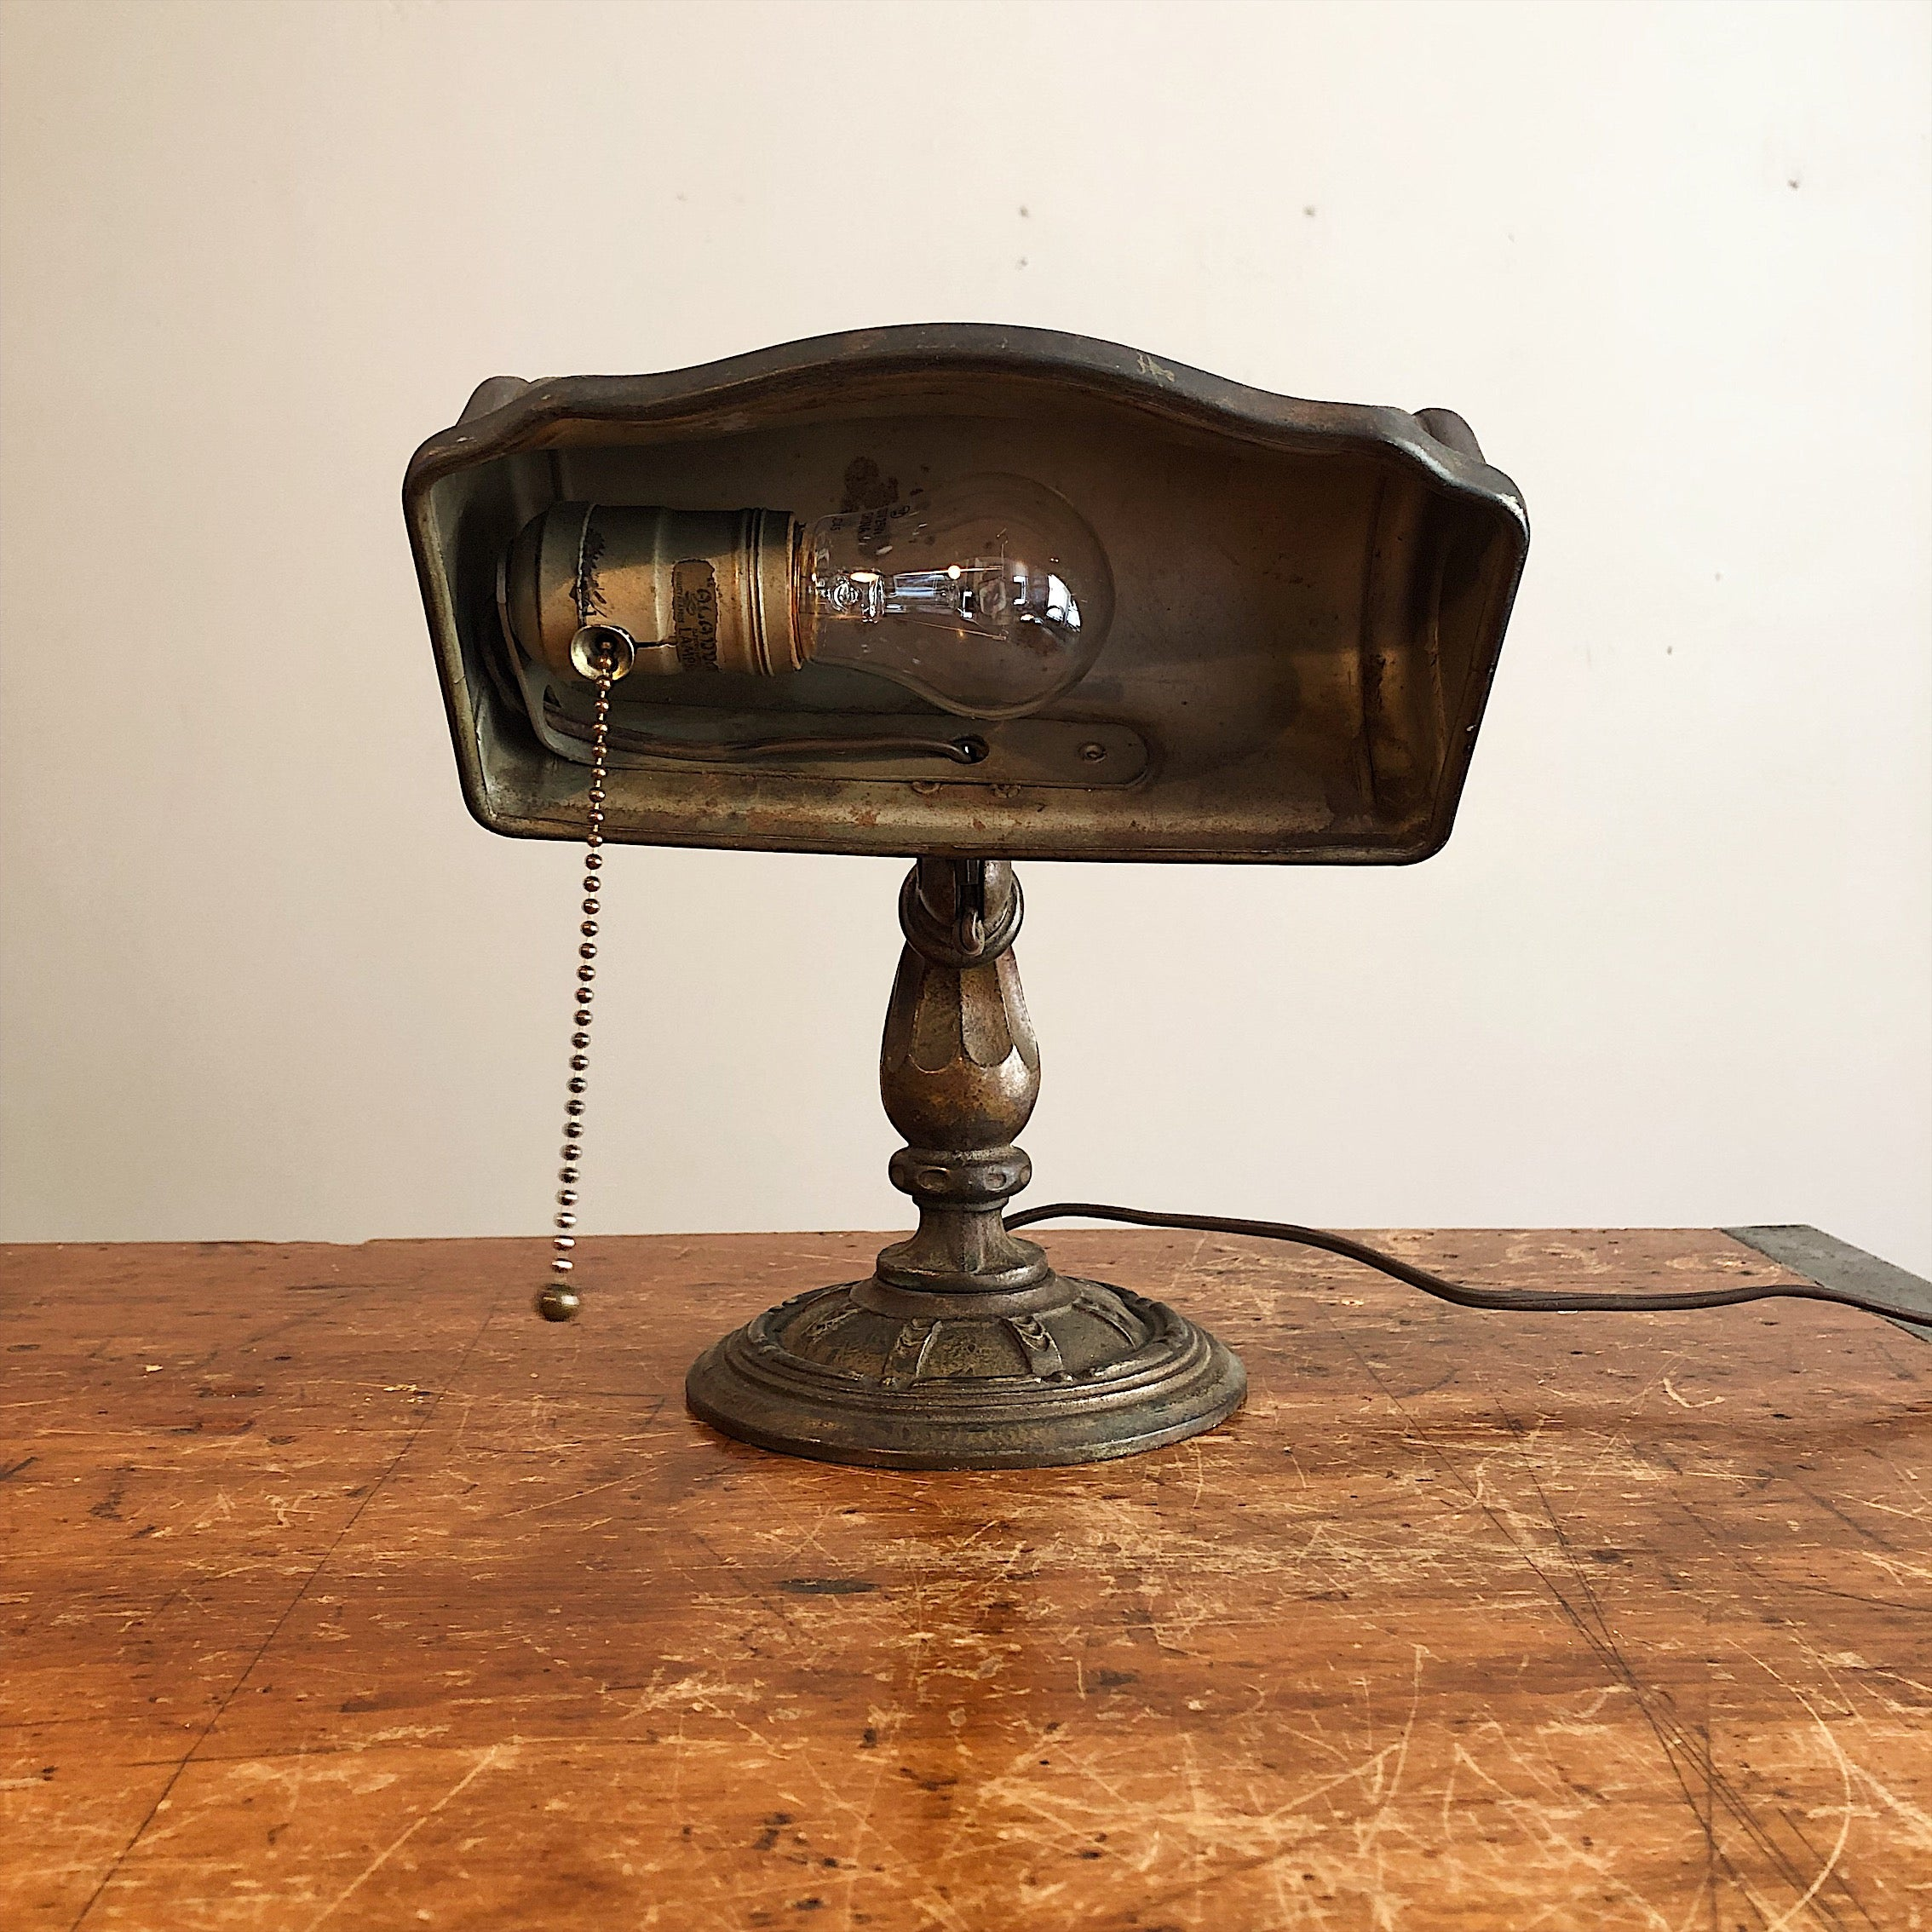 Inside Shade of Rare Aladdin Lamp with Ornate Cast Iron Base - Antique Industrial Decor - Vintage Lighting - 1920s Table Lamp